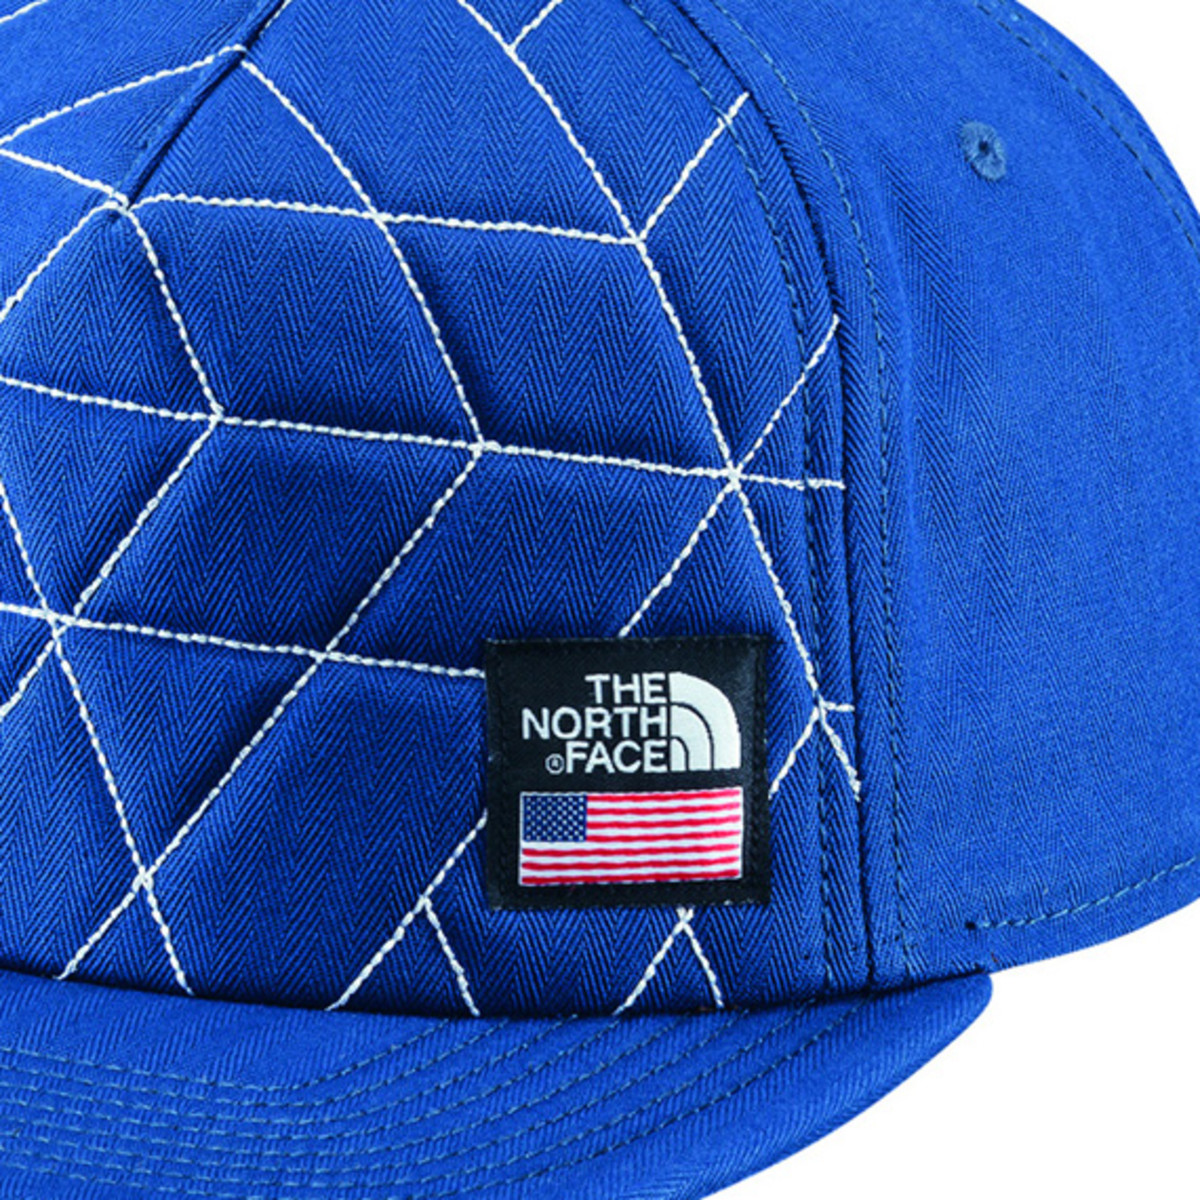 the-north-face-2014-winter-olympics-sochi-team-usa-villagewear-collection-accessories-04a